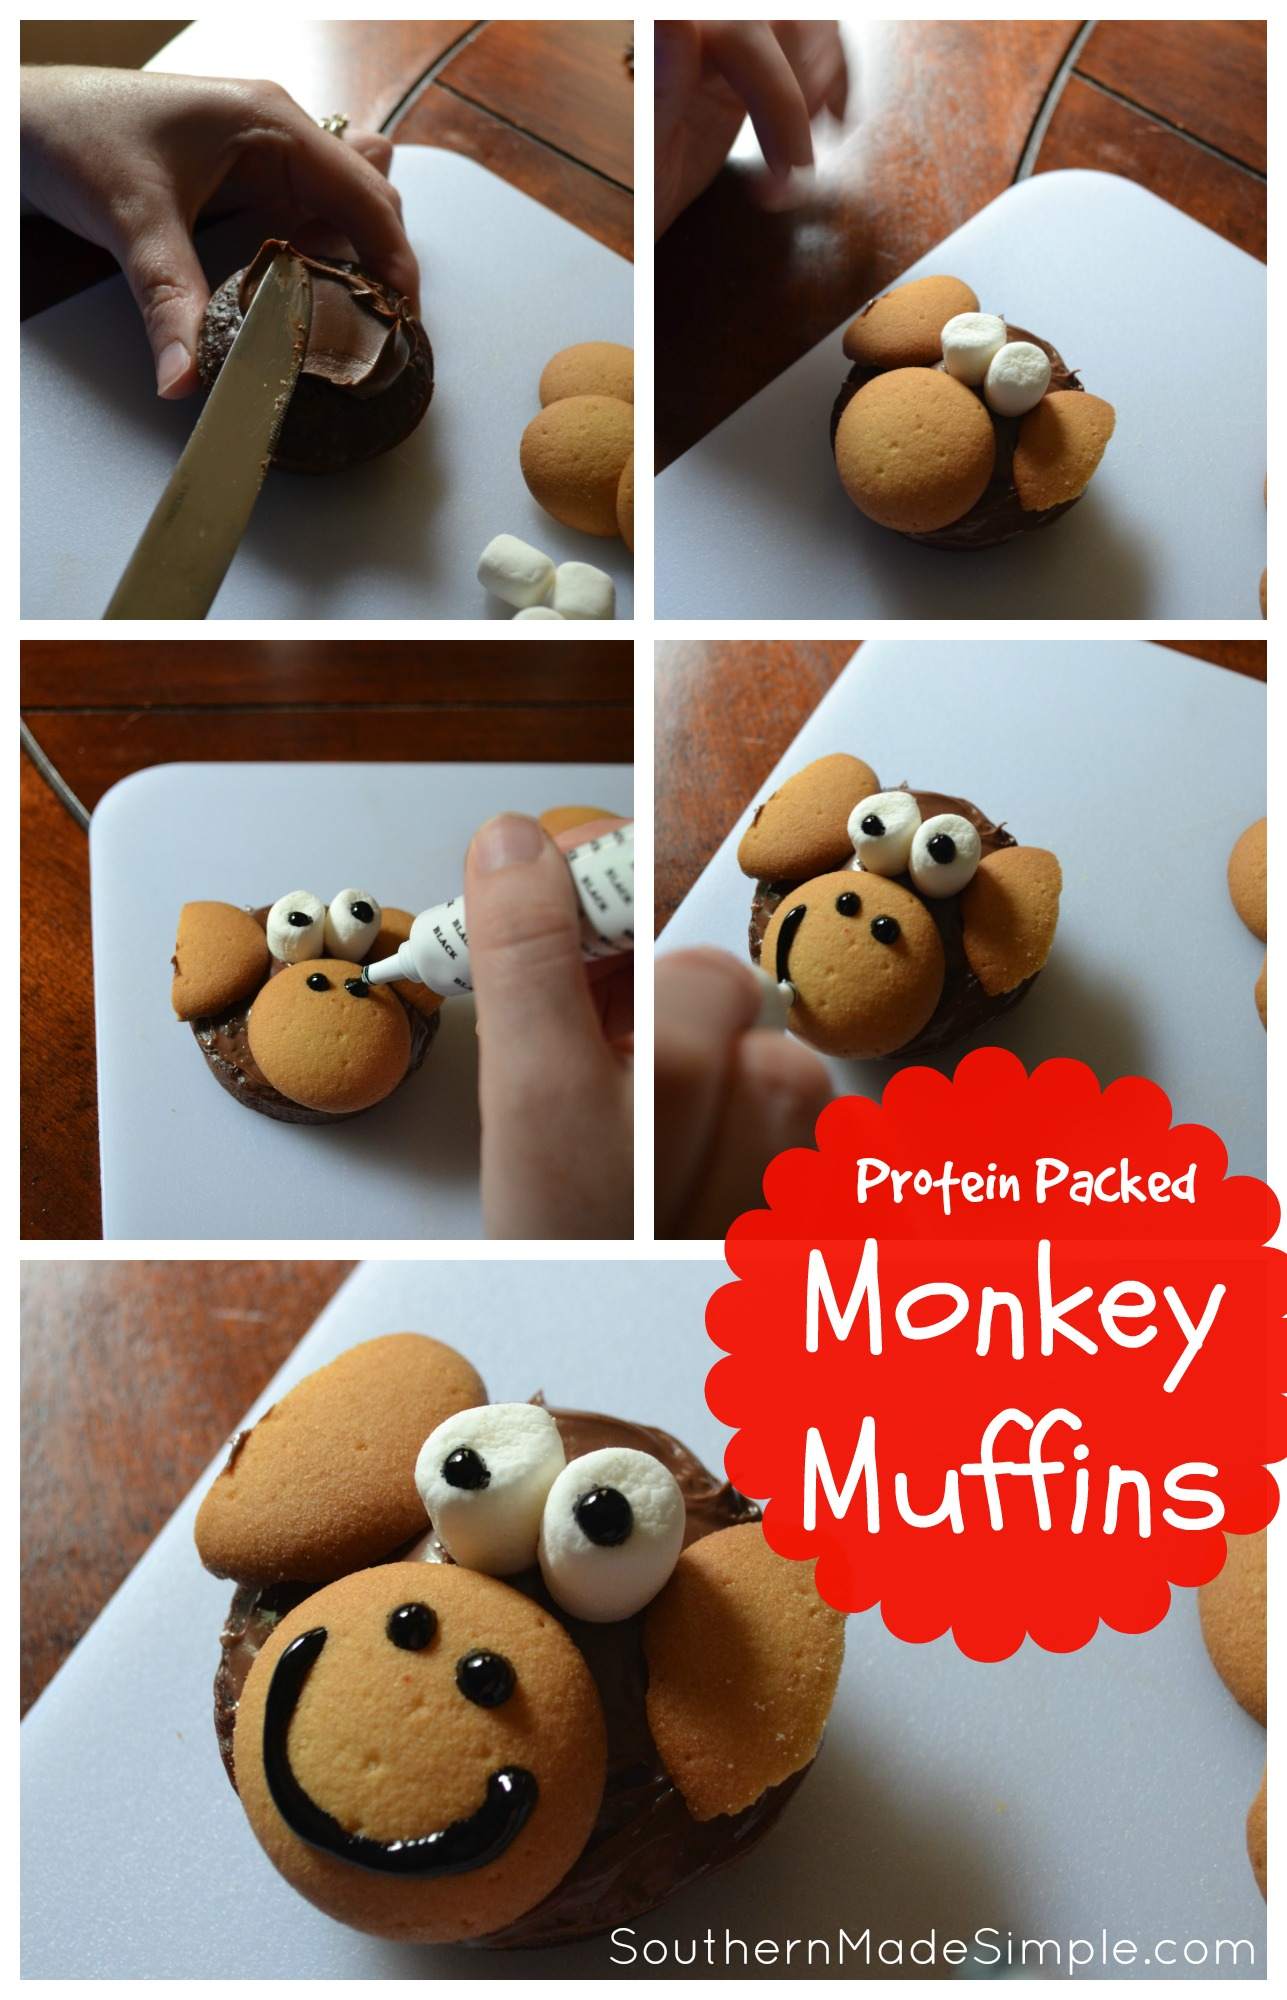 Protein Packed Monkey Muffins - The perfect toddler snack! Chocolate, banana and quinoa muffins with a special hidden ingredients to really pack in the nutrients! #NutritionInTheMix #Walmart #ad